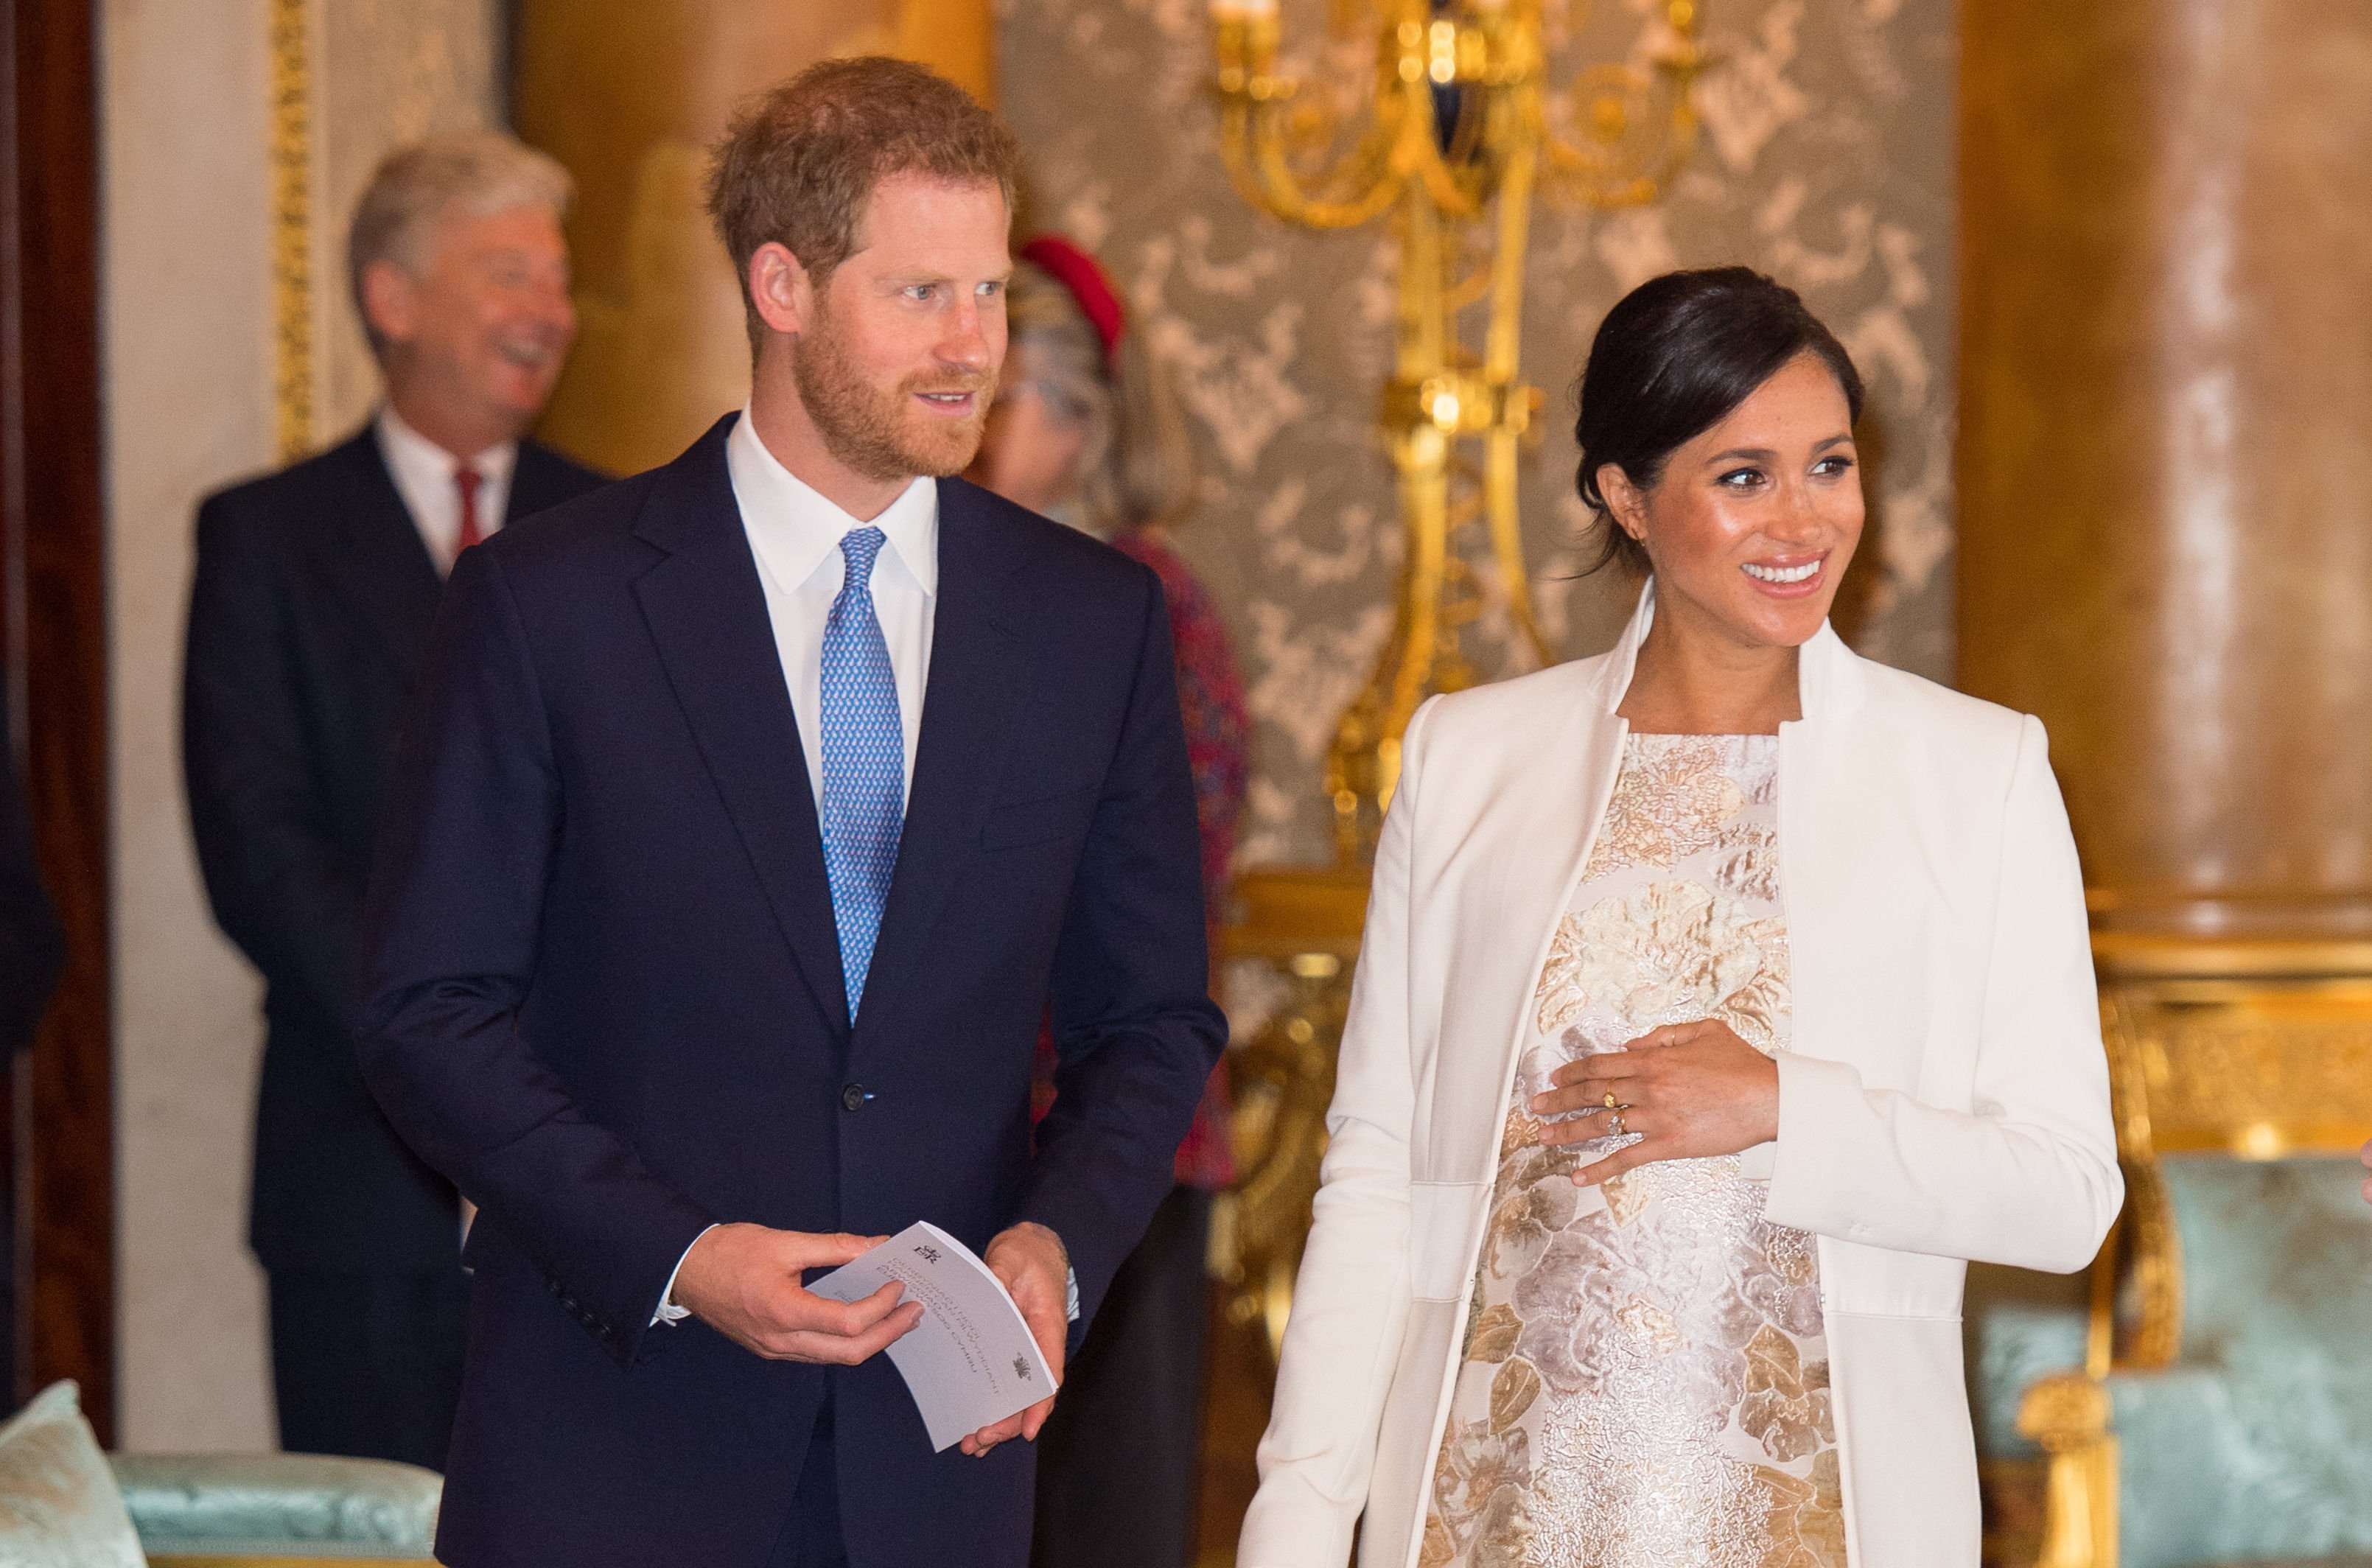 Prince Harry and Meghan Markle at the fiftieth anniversary of the investiture of the Prince of Wales at Buckingham Palace | Photo: Getty Images